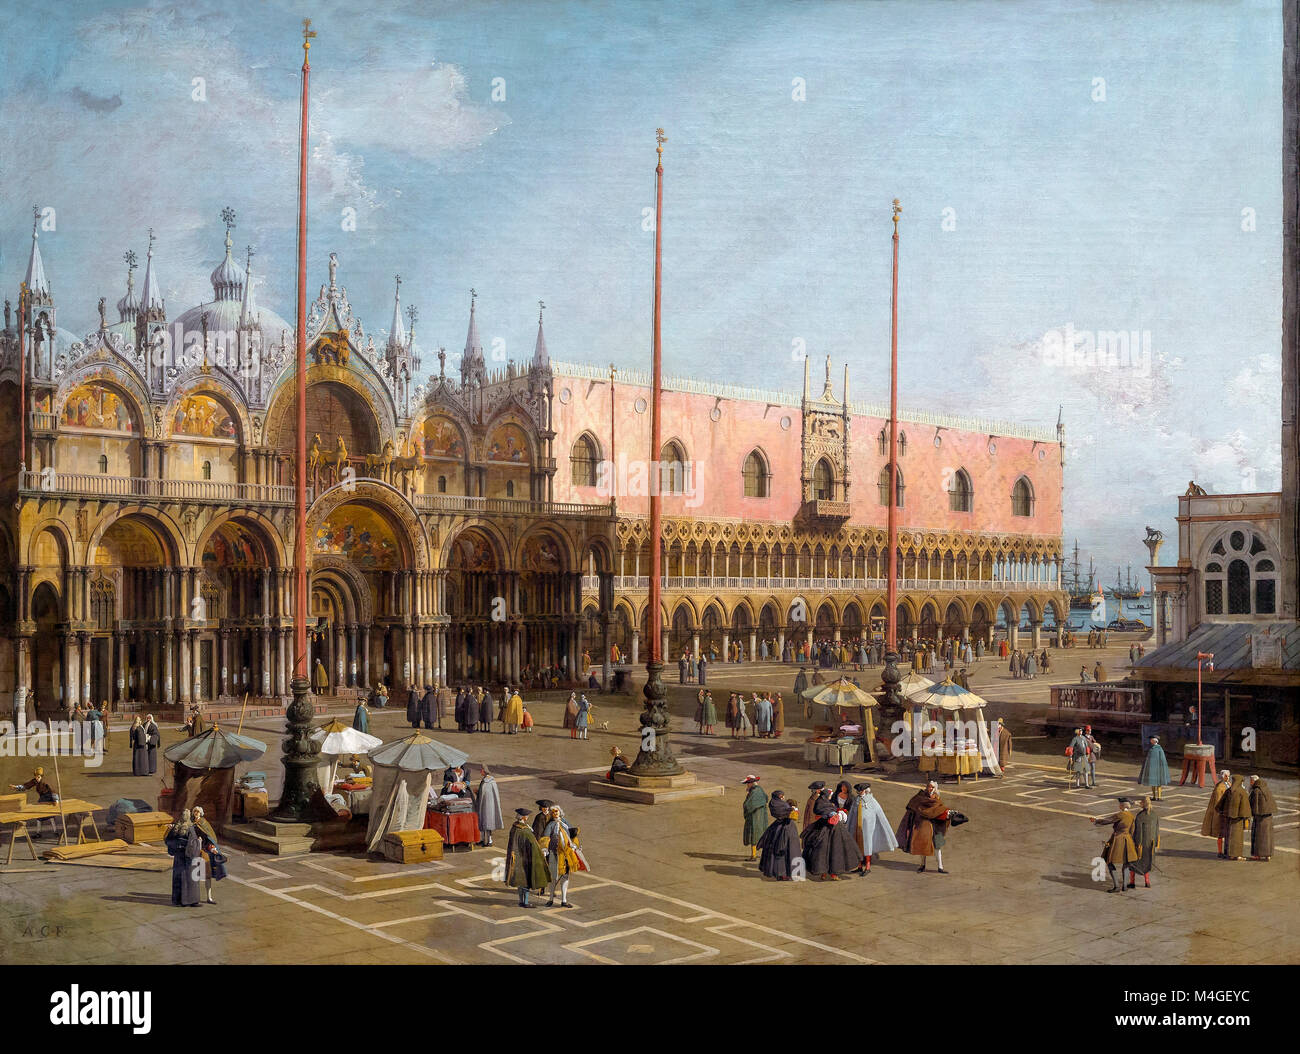 The Square of Saint Mark's, Venice, Canaletto, 1742-1744, National Gallery of Art, Washington DC, USA, North - Stock Image